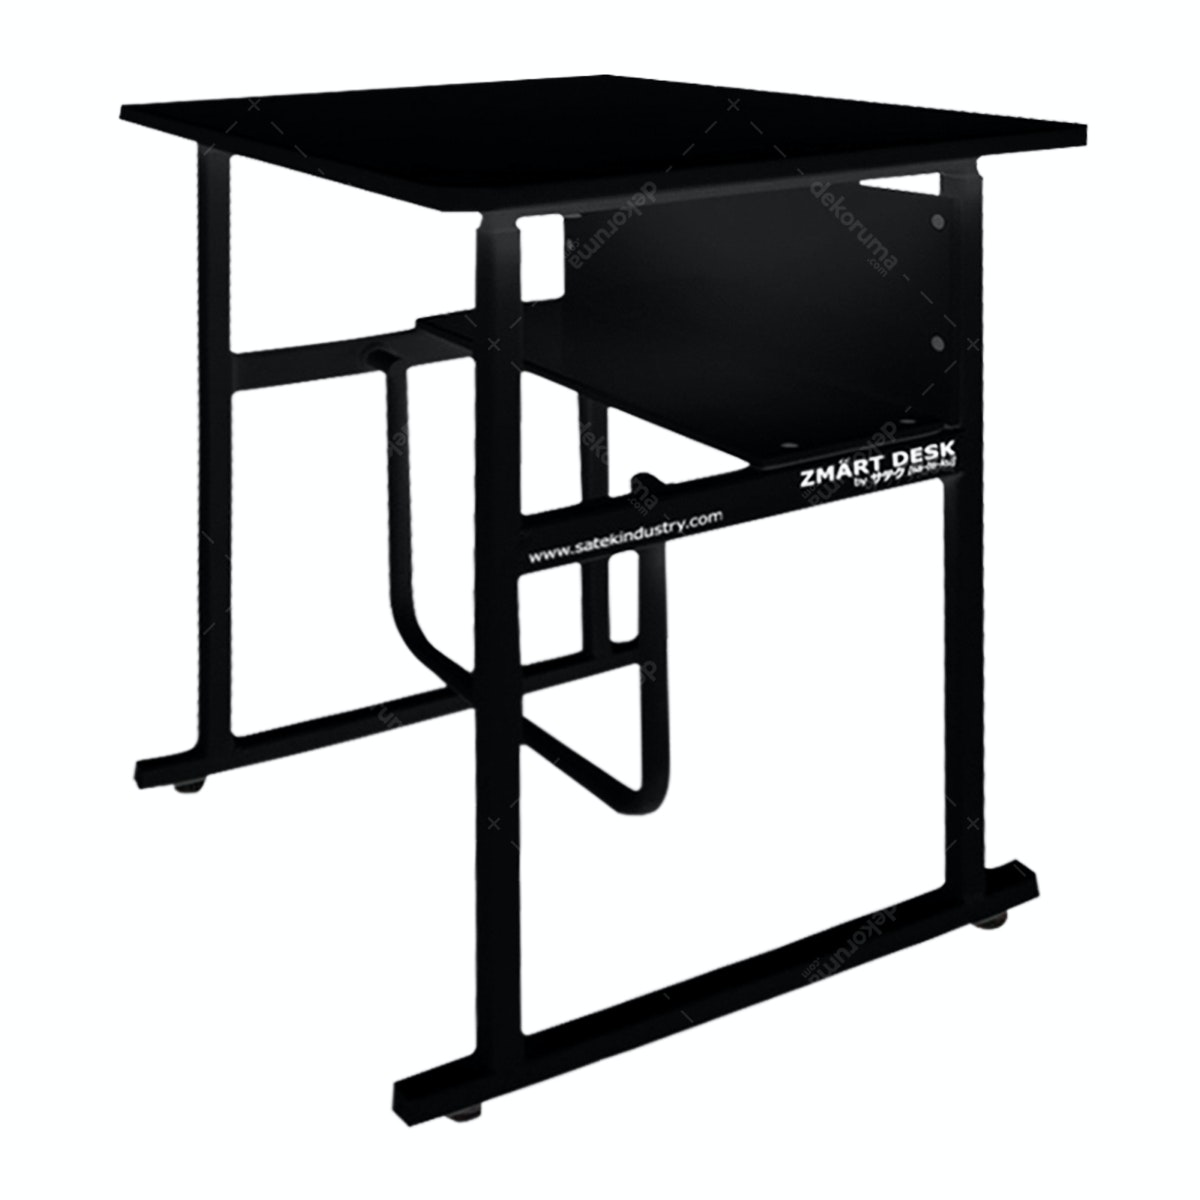 Zmart Desk Kinesthetic Standing-Sitting Desk Hitam